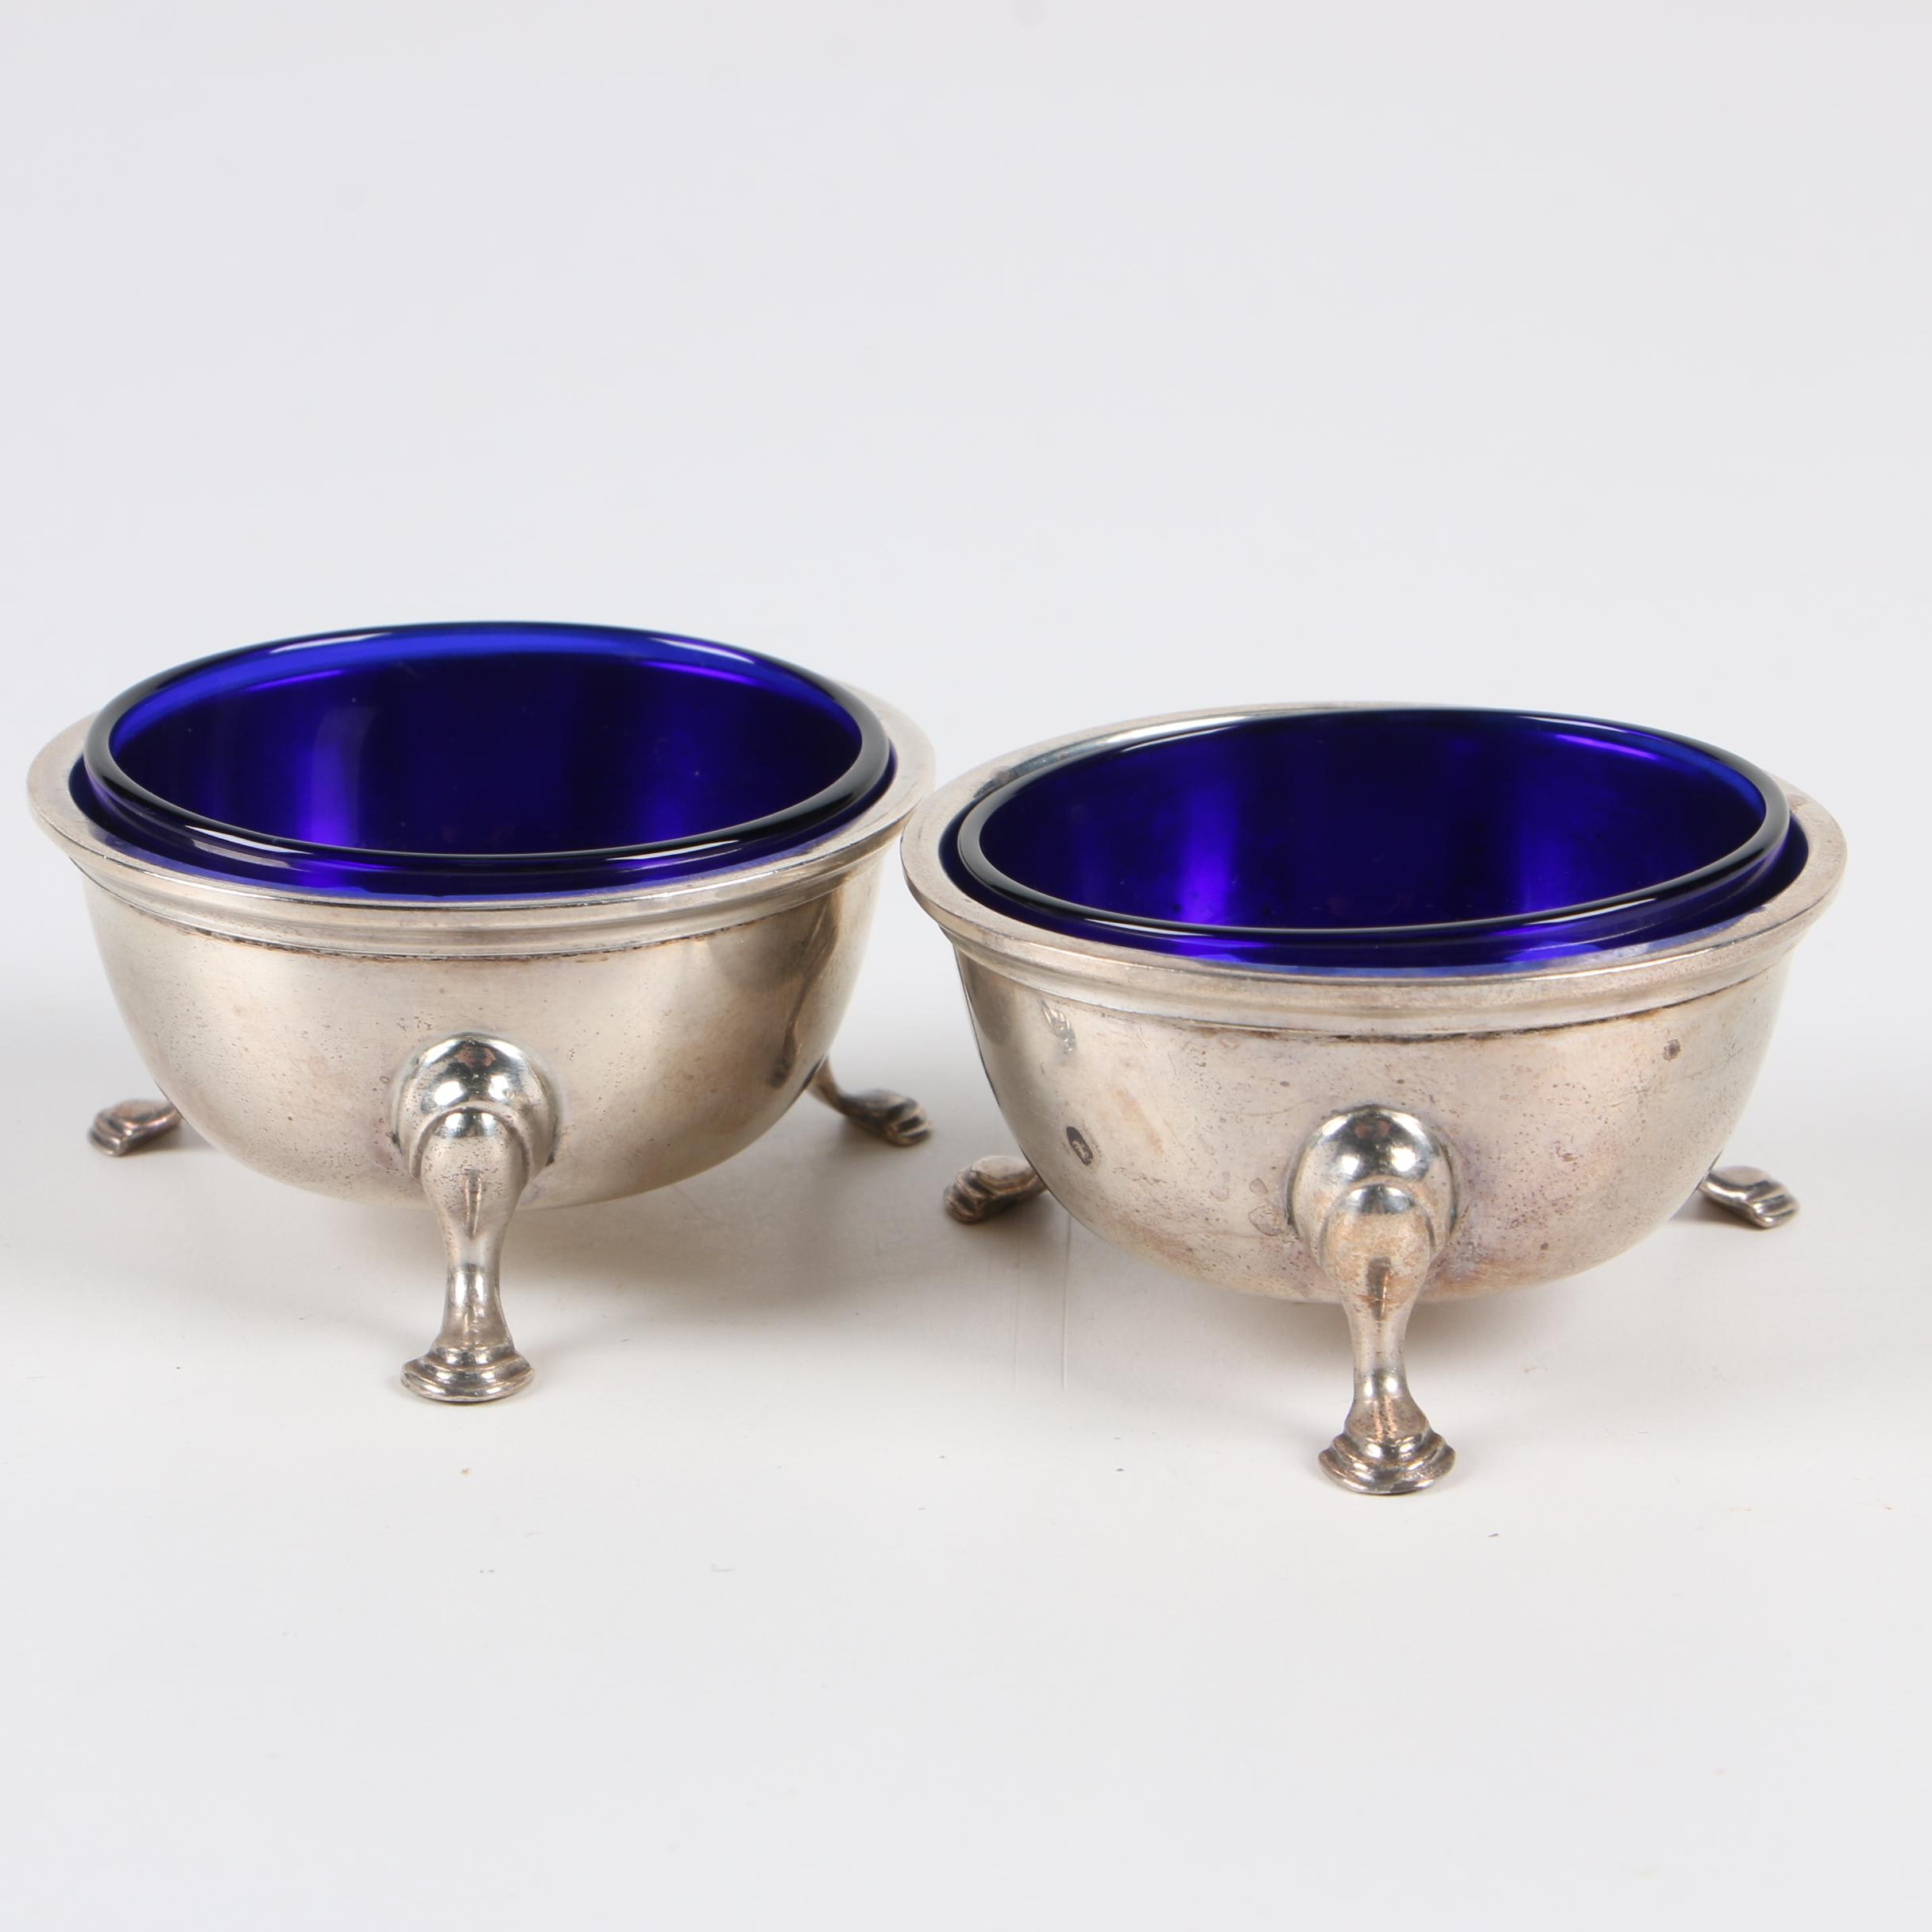 Redlich & Co. Sterling Salt Cellars with Cobalt Glass Inserts, 1895–1946